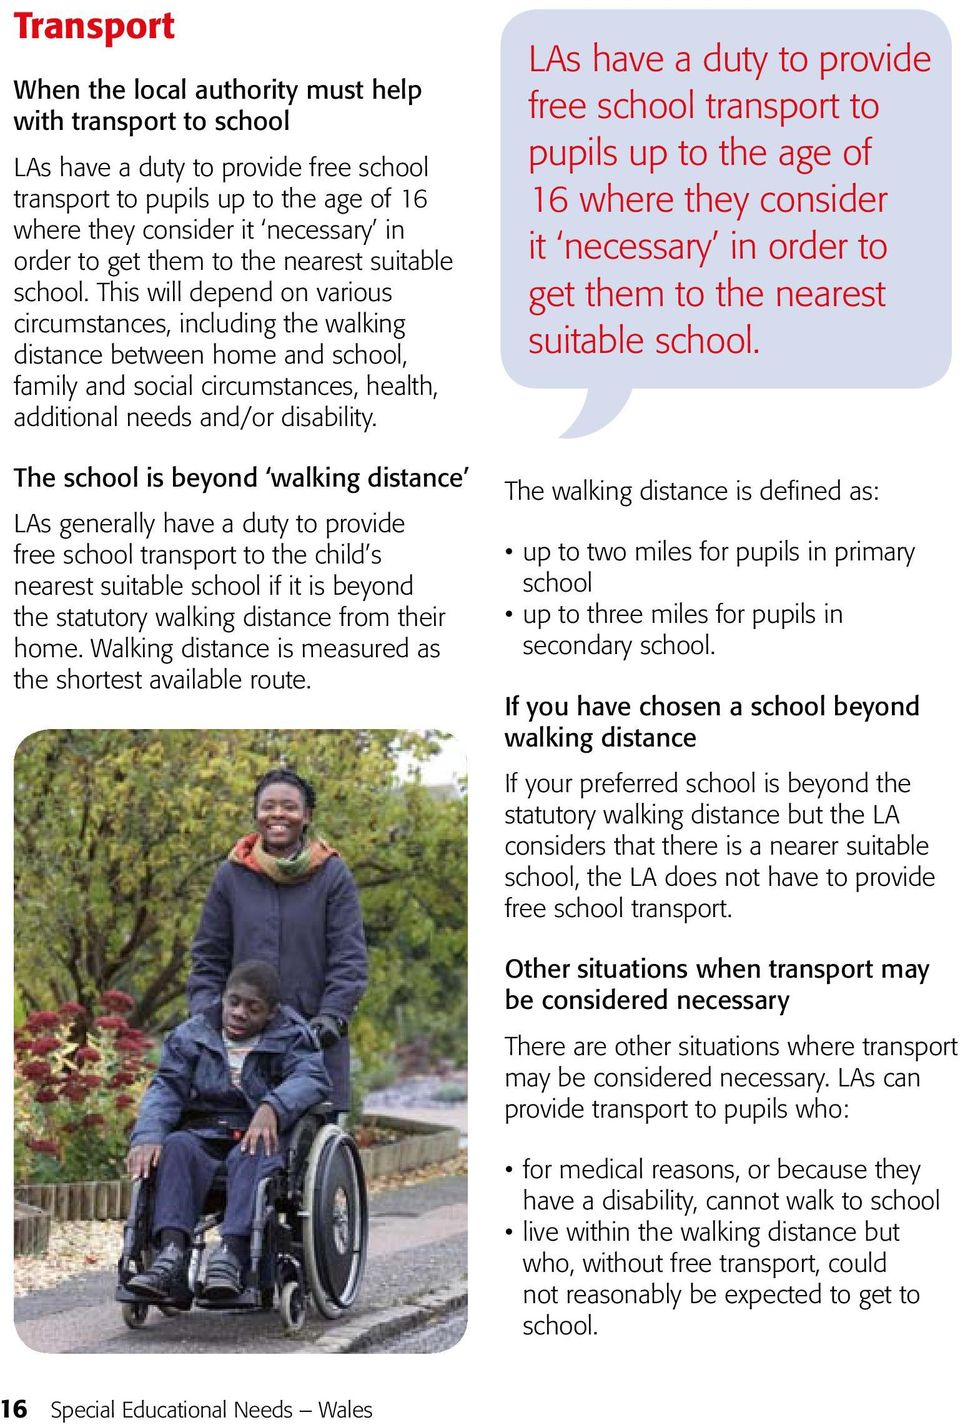 This will depend on various circumstances, including the walking distance between home and school, family and social circumstances, health, additional needs and/or disability.